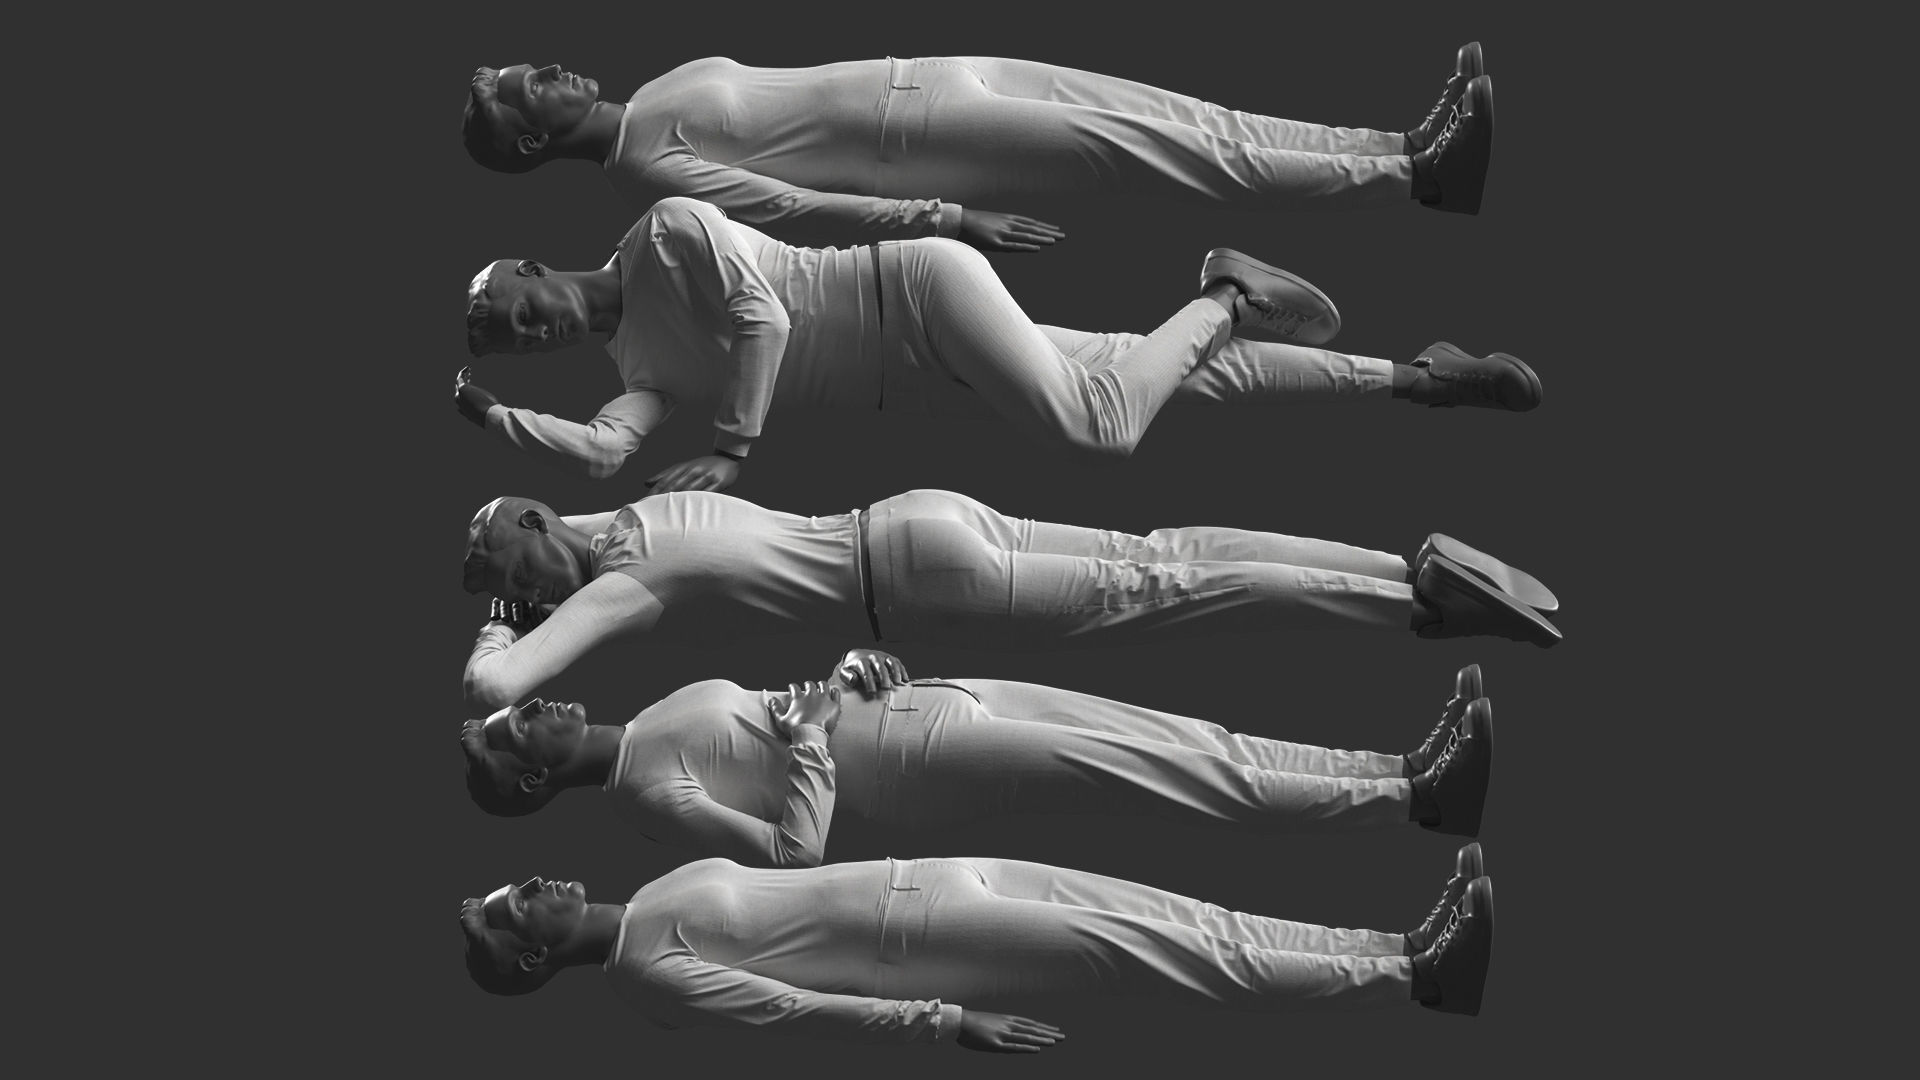 Man Mannequin Lying 5 Poses